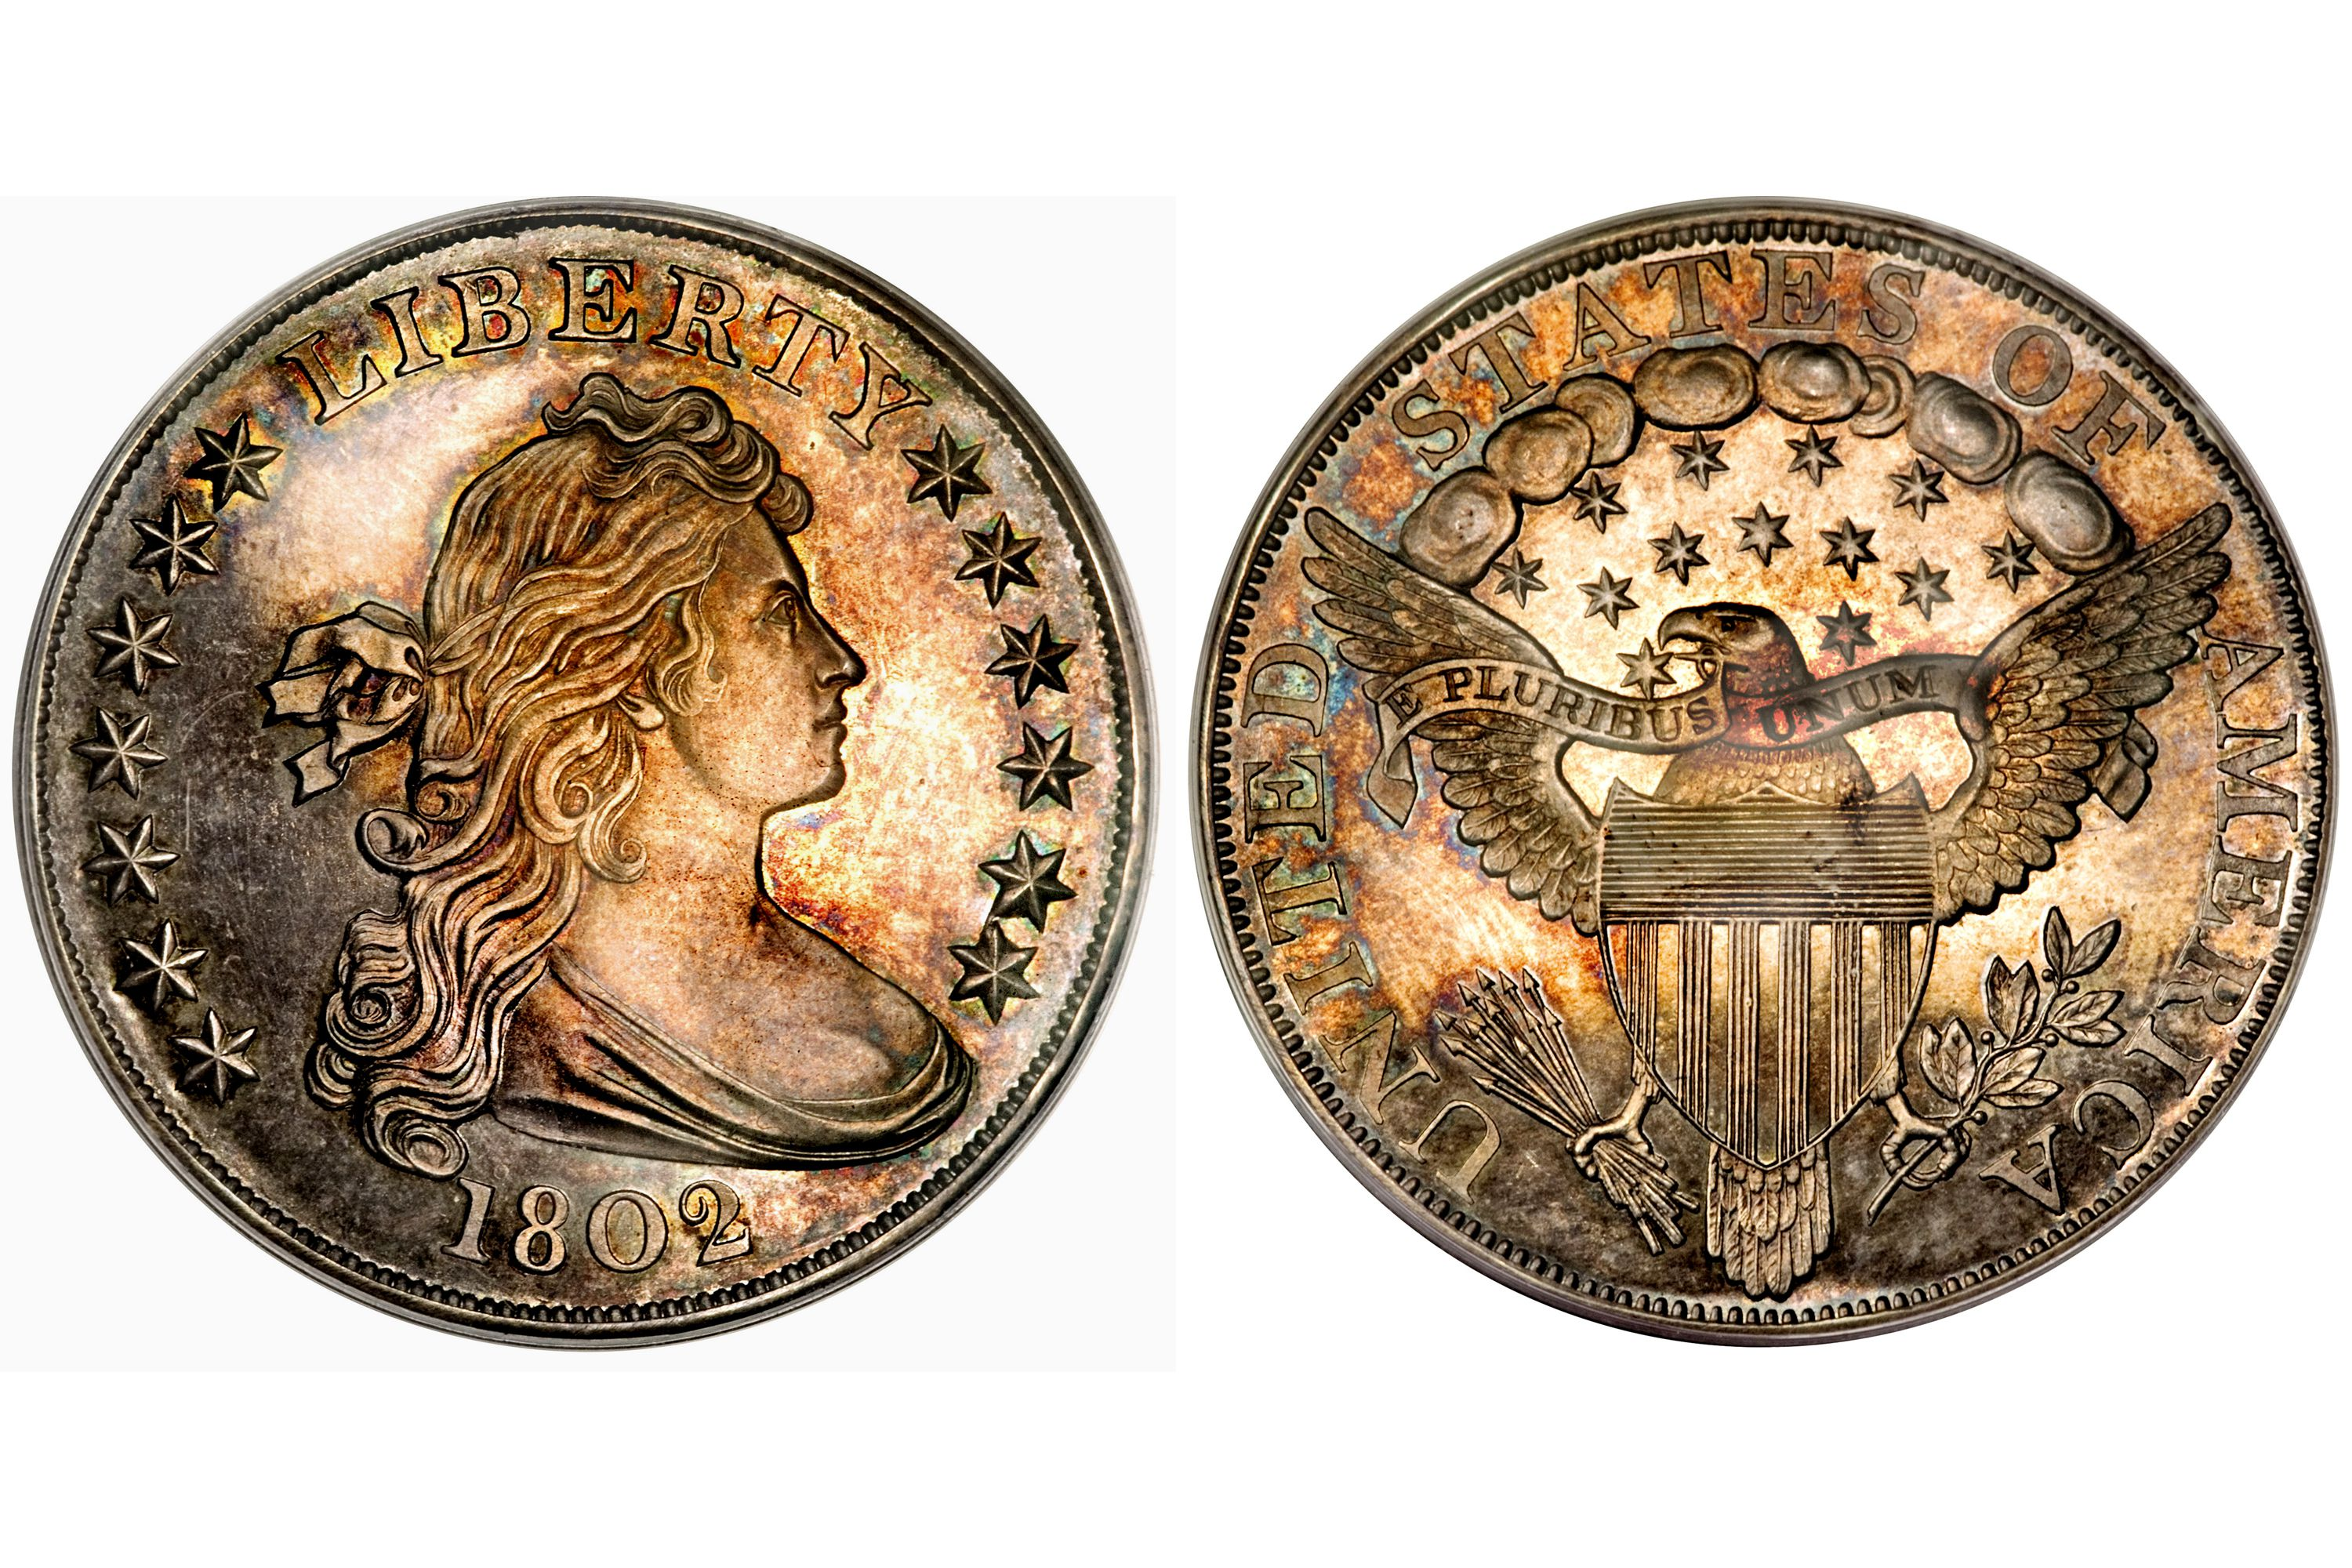 1802 Proof Draped Bust Silver Dollar